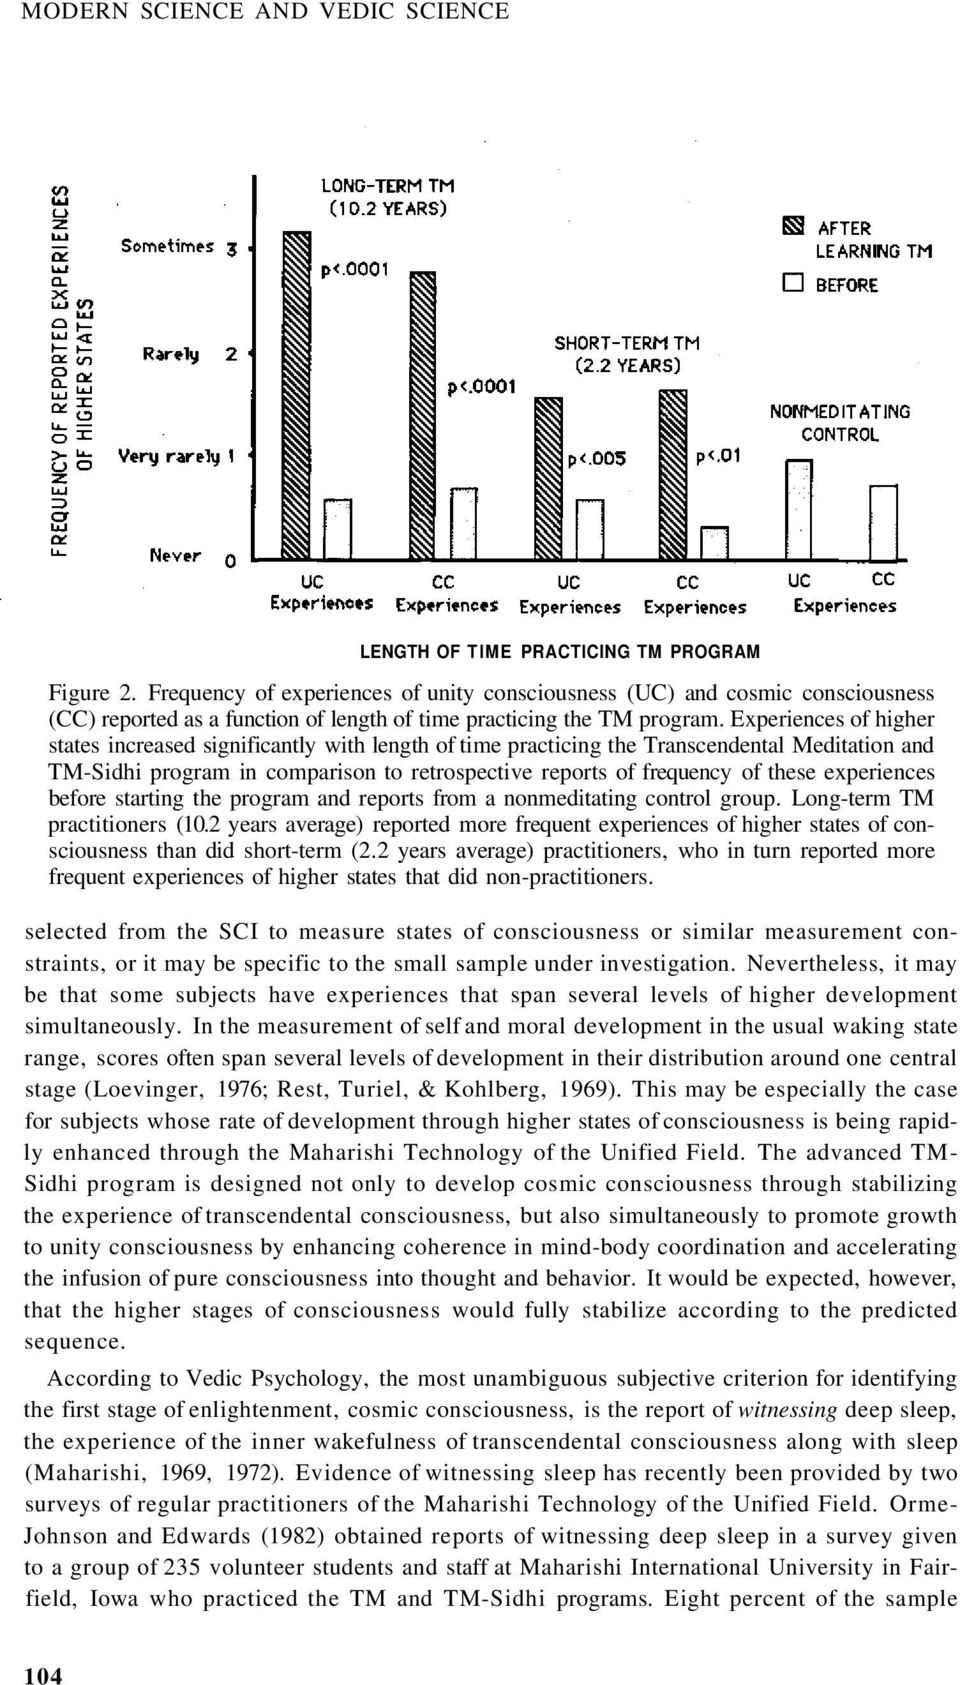 Experiences of higher states increased significantly with length of time practicing the Transcendental Meditation and TM-Sidhi program in comparison to retrospective reports of frequency of these